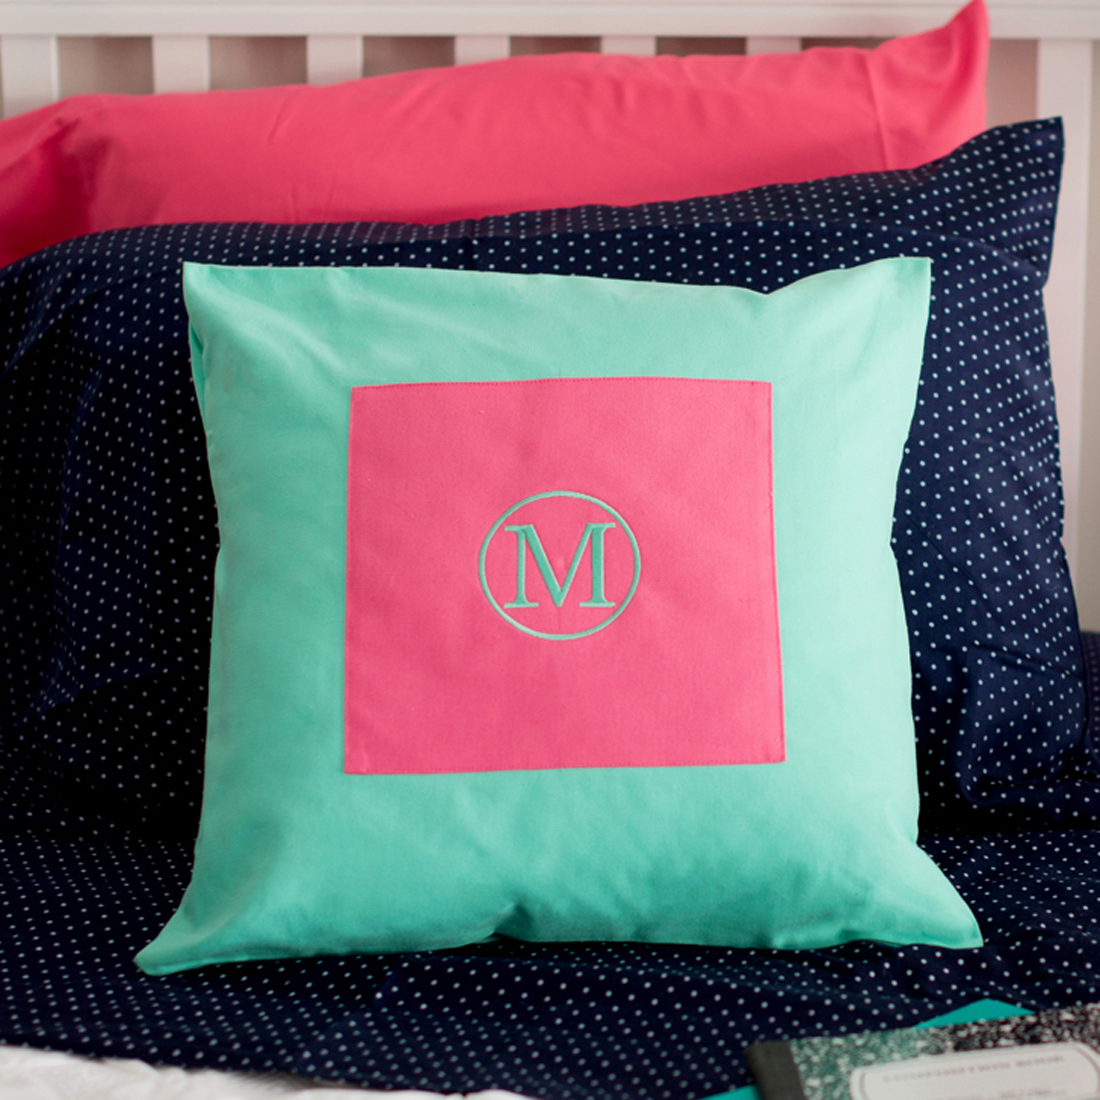 Monogrammed Throw Pillow Covers : Monogrammed Pillow Covers Embroidered Monogrammed Pillow Throw Pillow